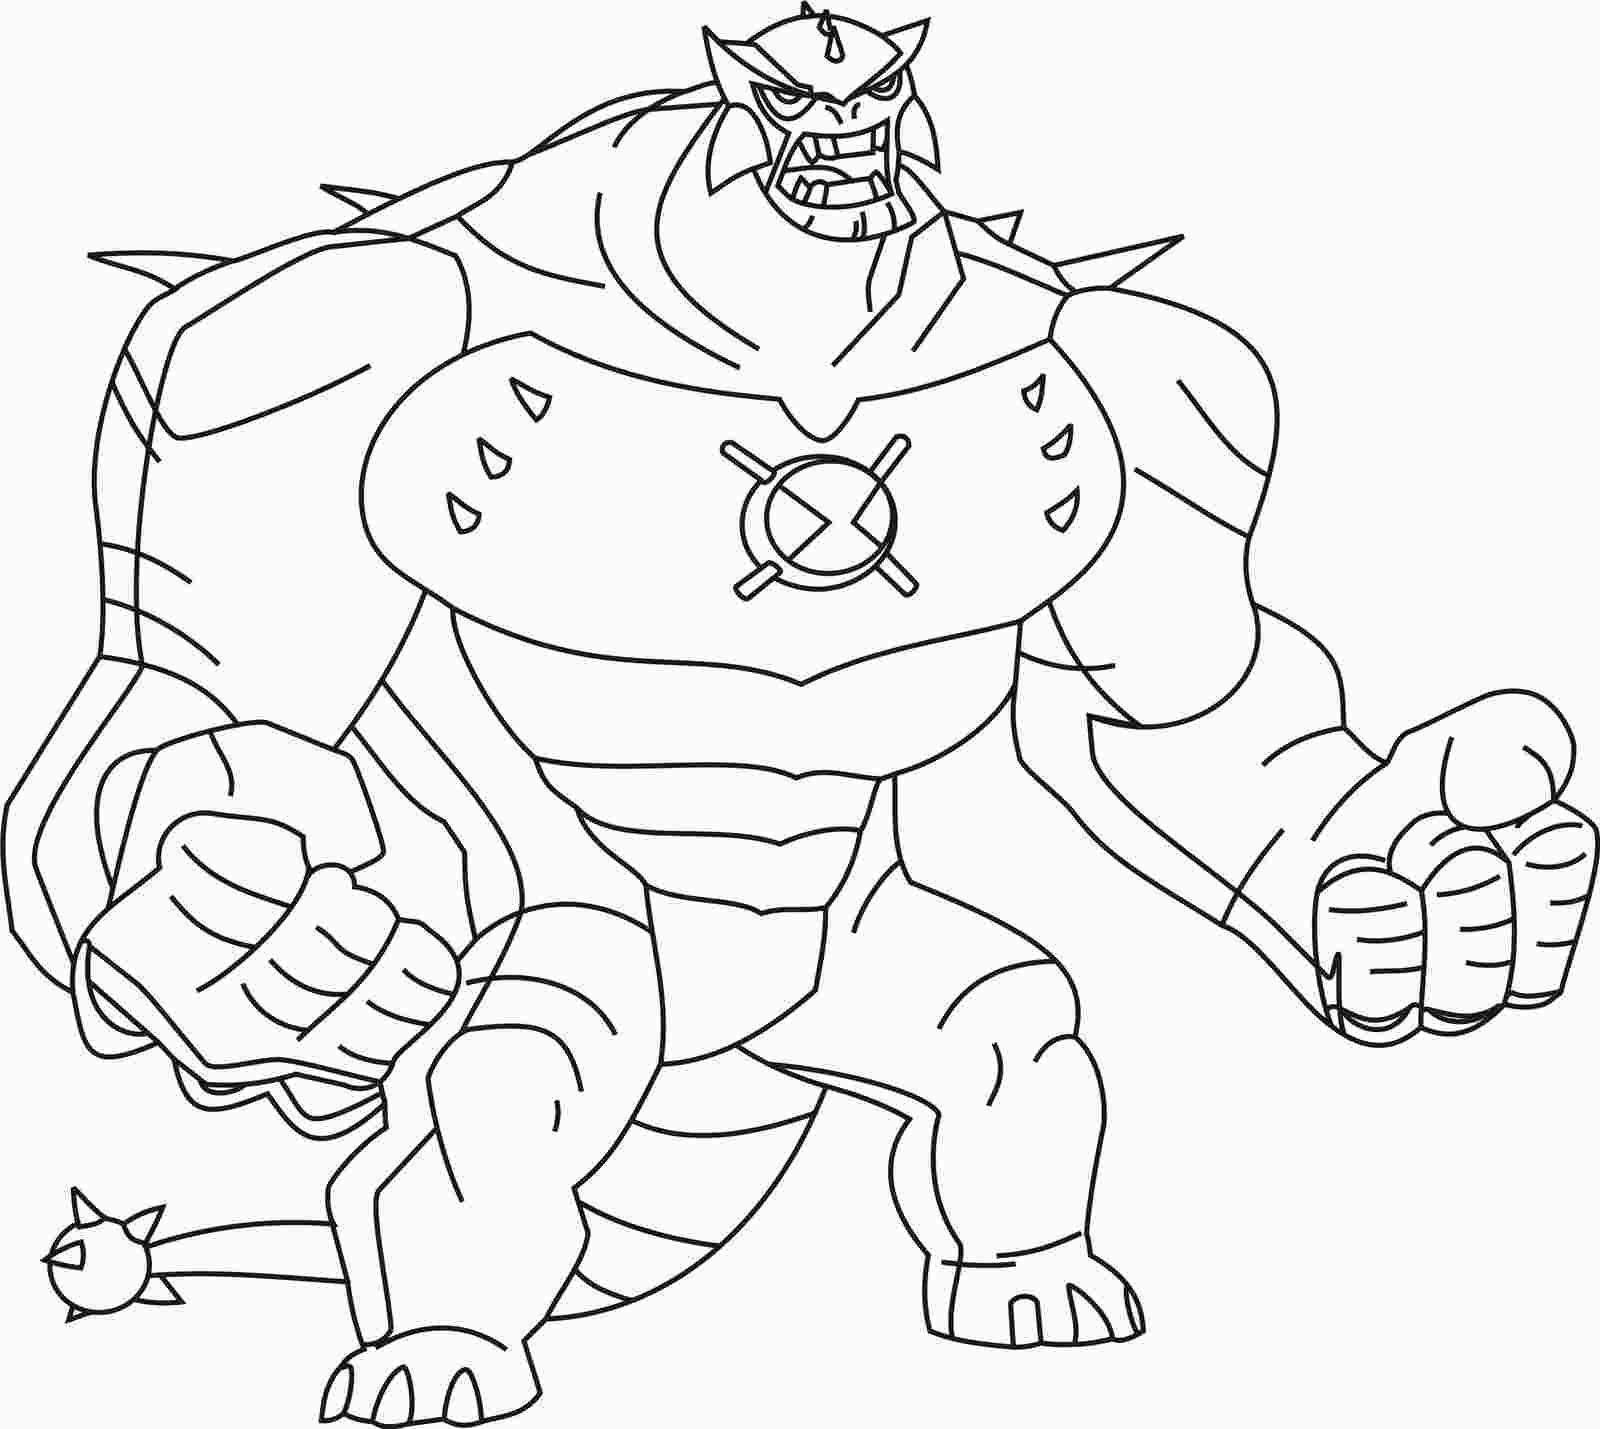 Ben 10 Alien Coloring Cartoon Coloring Pages Coloring Books Coloring Pages